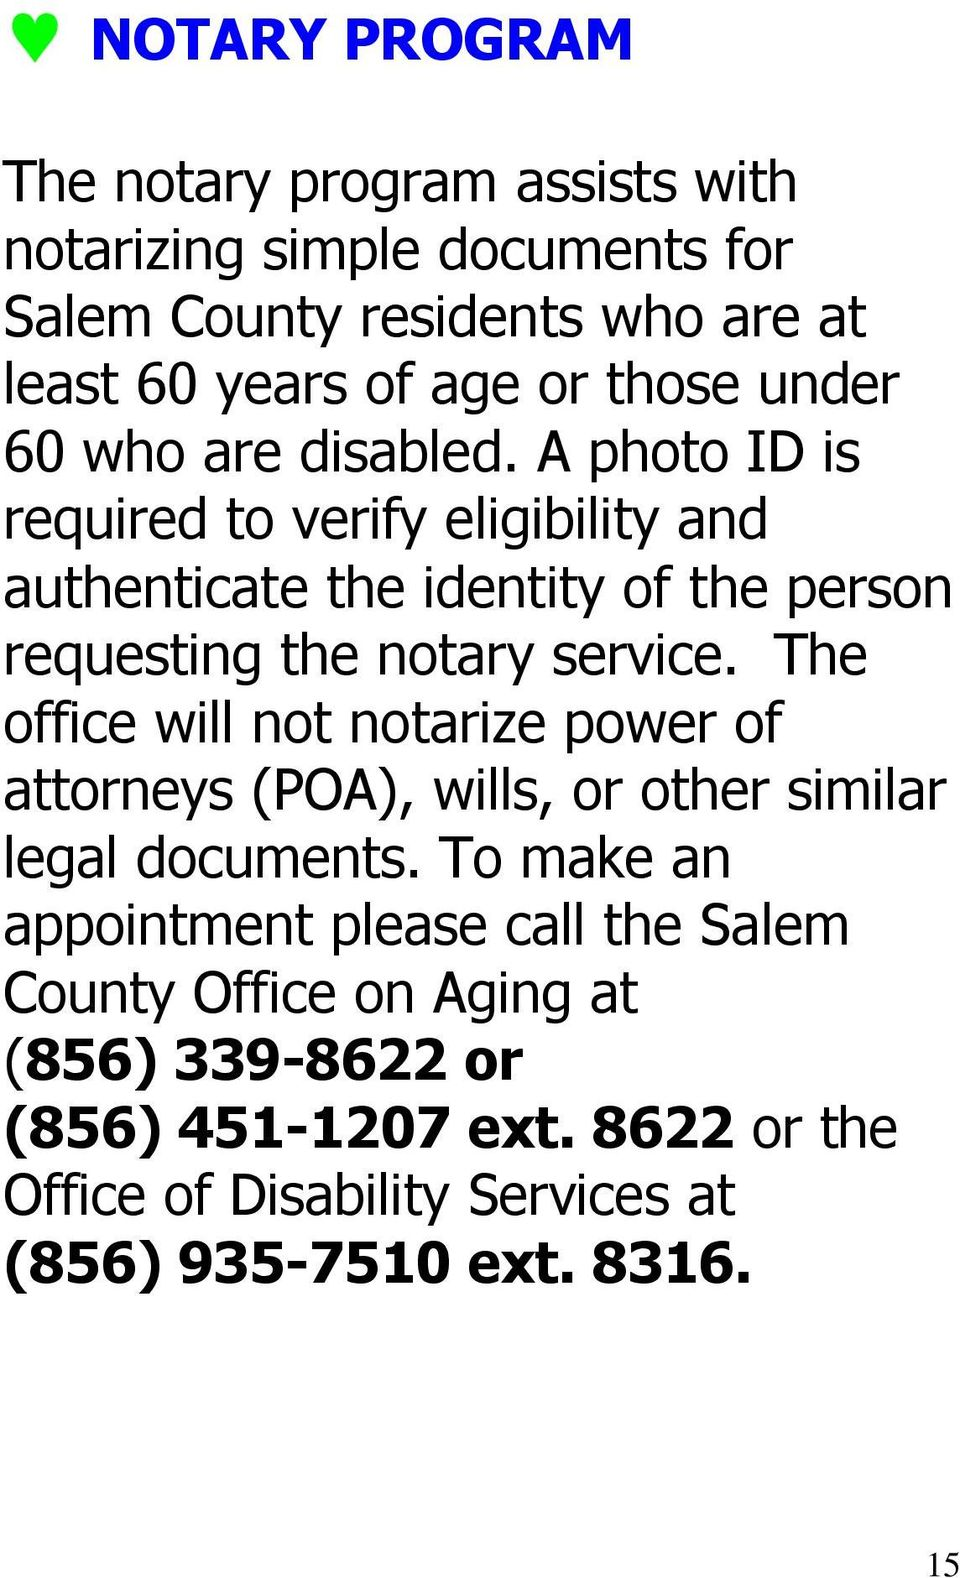 A photo ID is required to verify eligibility and authenticate the identity of the person requesting the notary service.